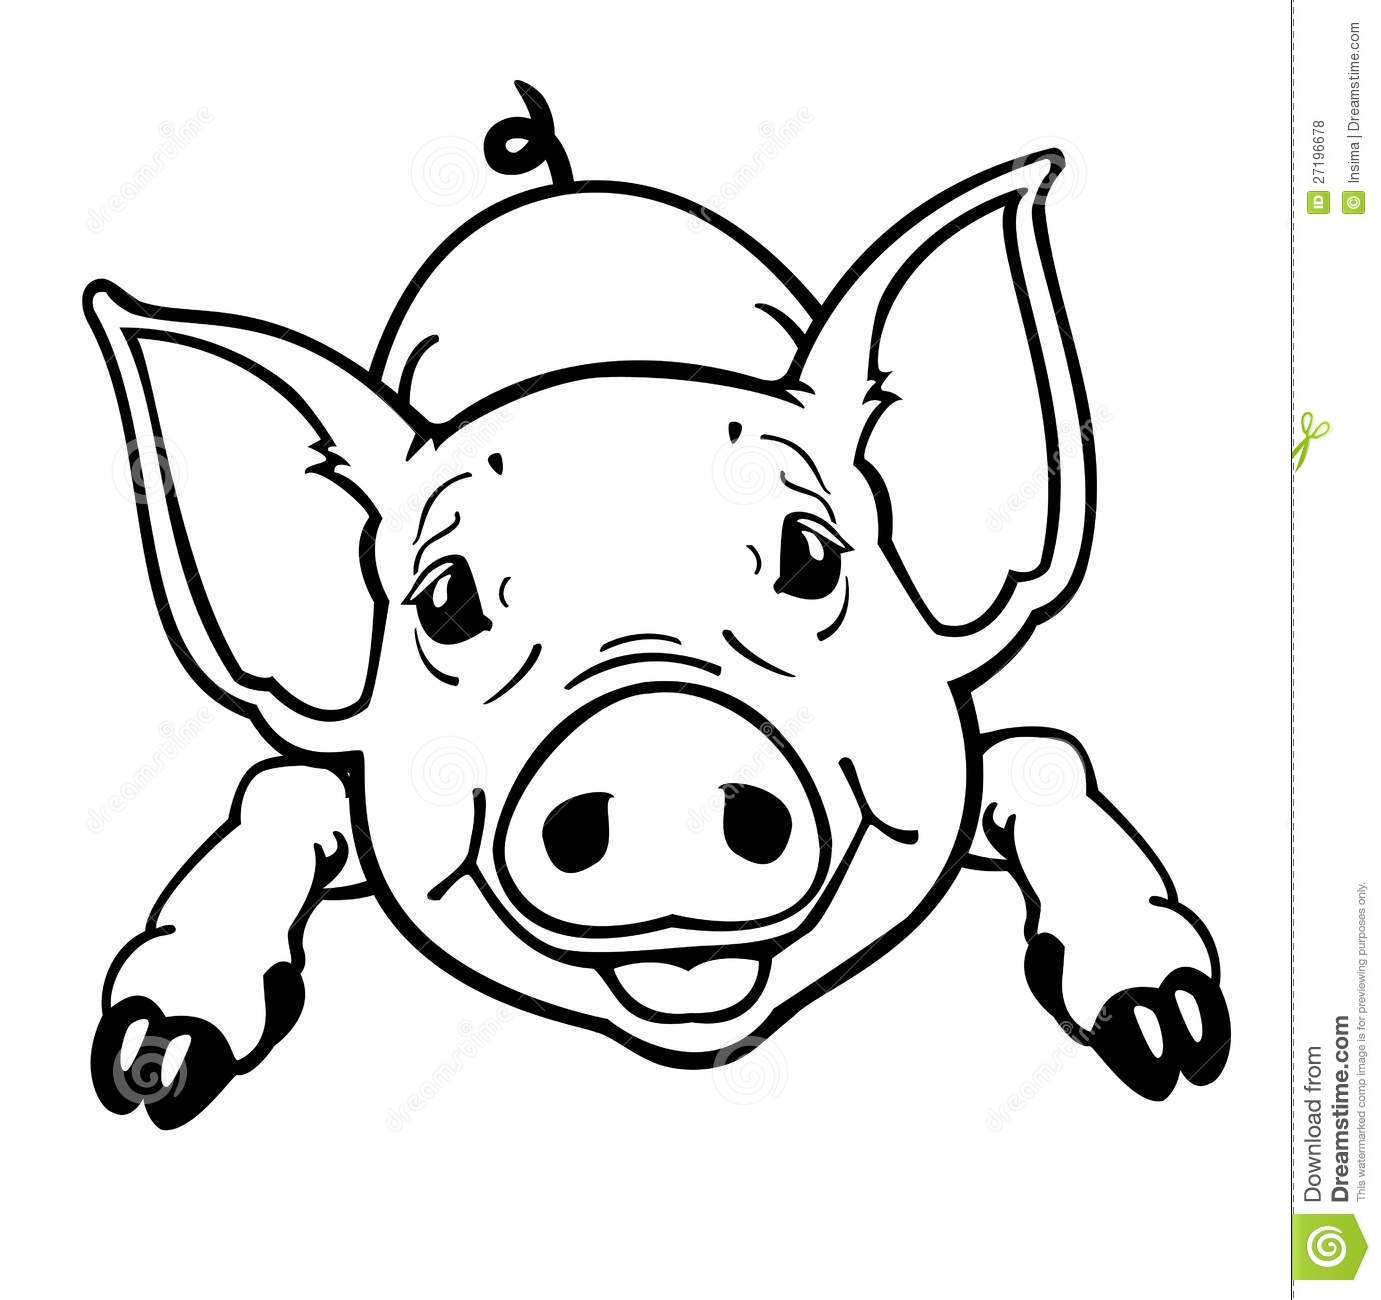 Line Drawing Of A Pig Face : Piglet black and white royalty free stock photos image